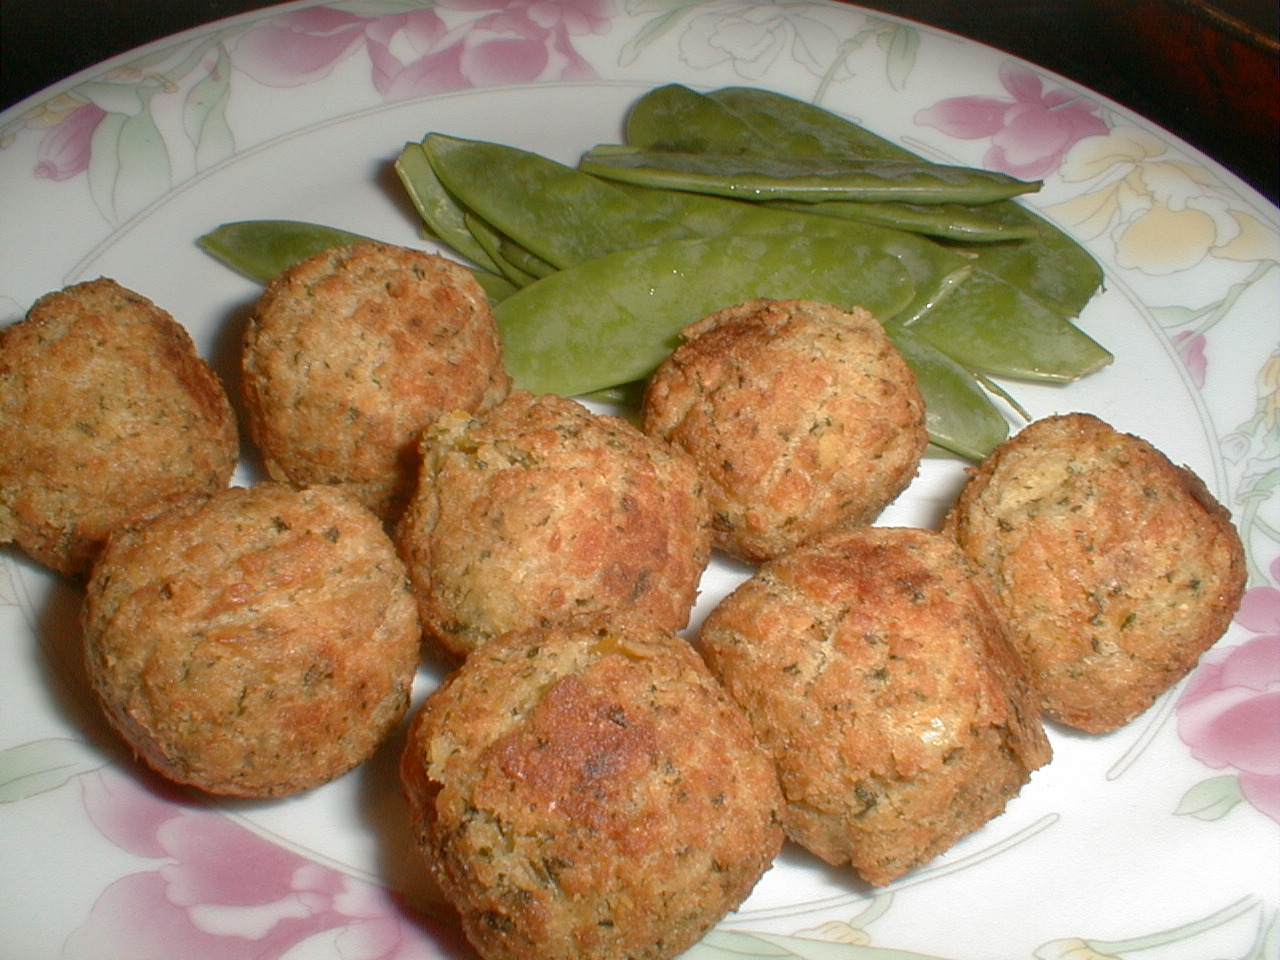 File:Falafel small.jpg - Wikimedia Commons